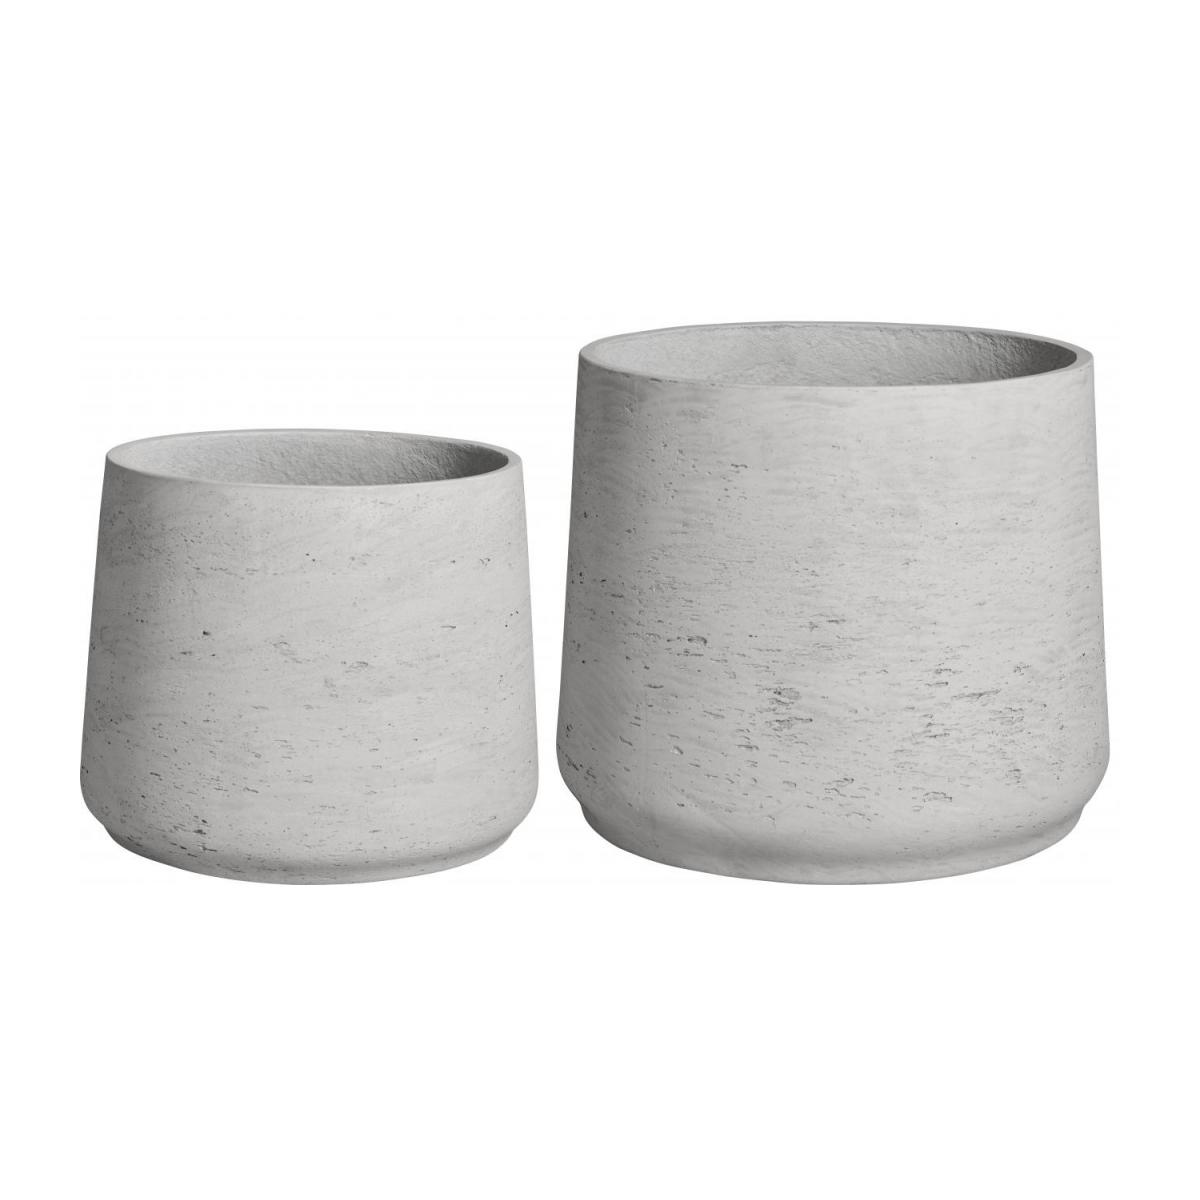 Lot de 2 cache-pots en ciment - Gris clair n°1